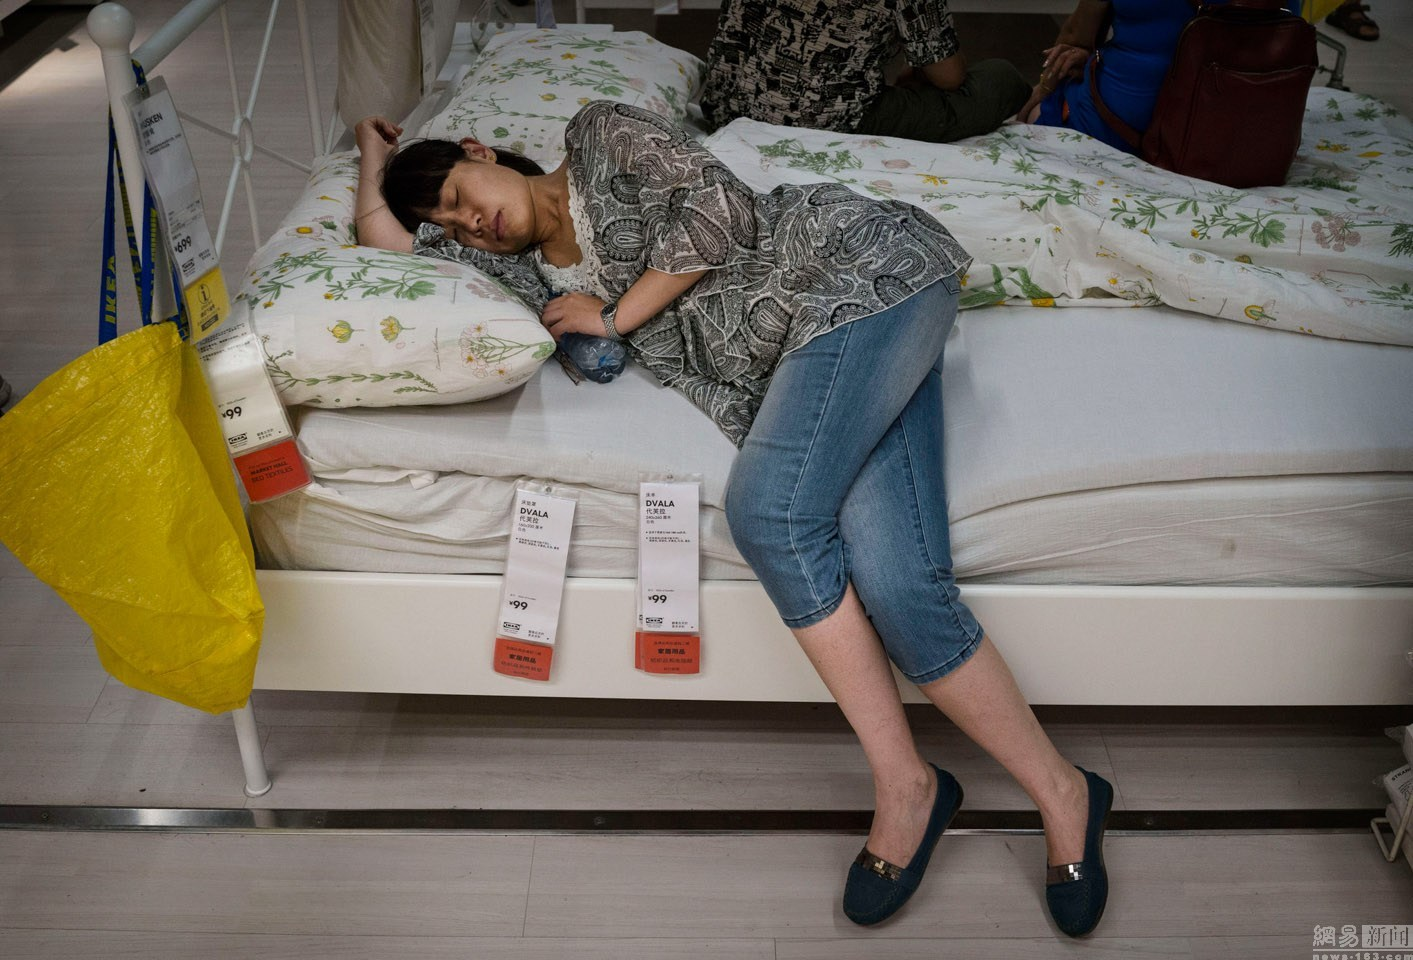 sleeping-chinese-at-ikea-beijing-china-06